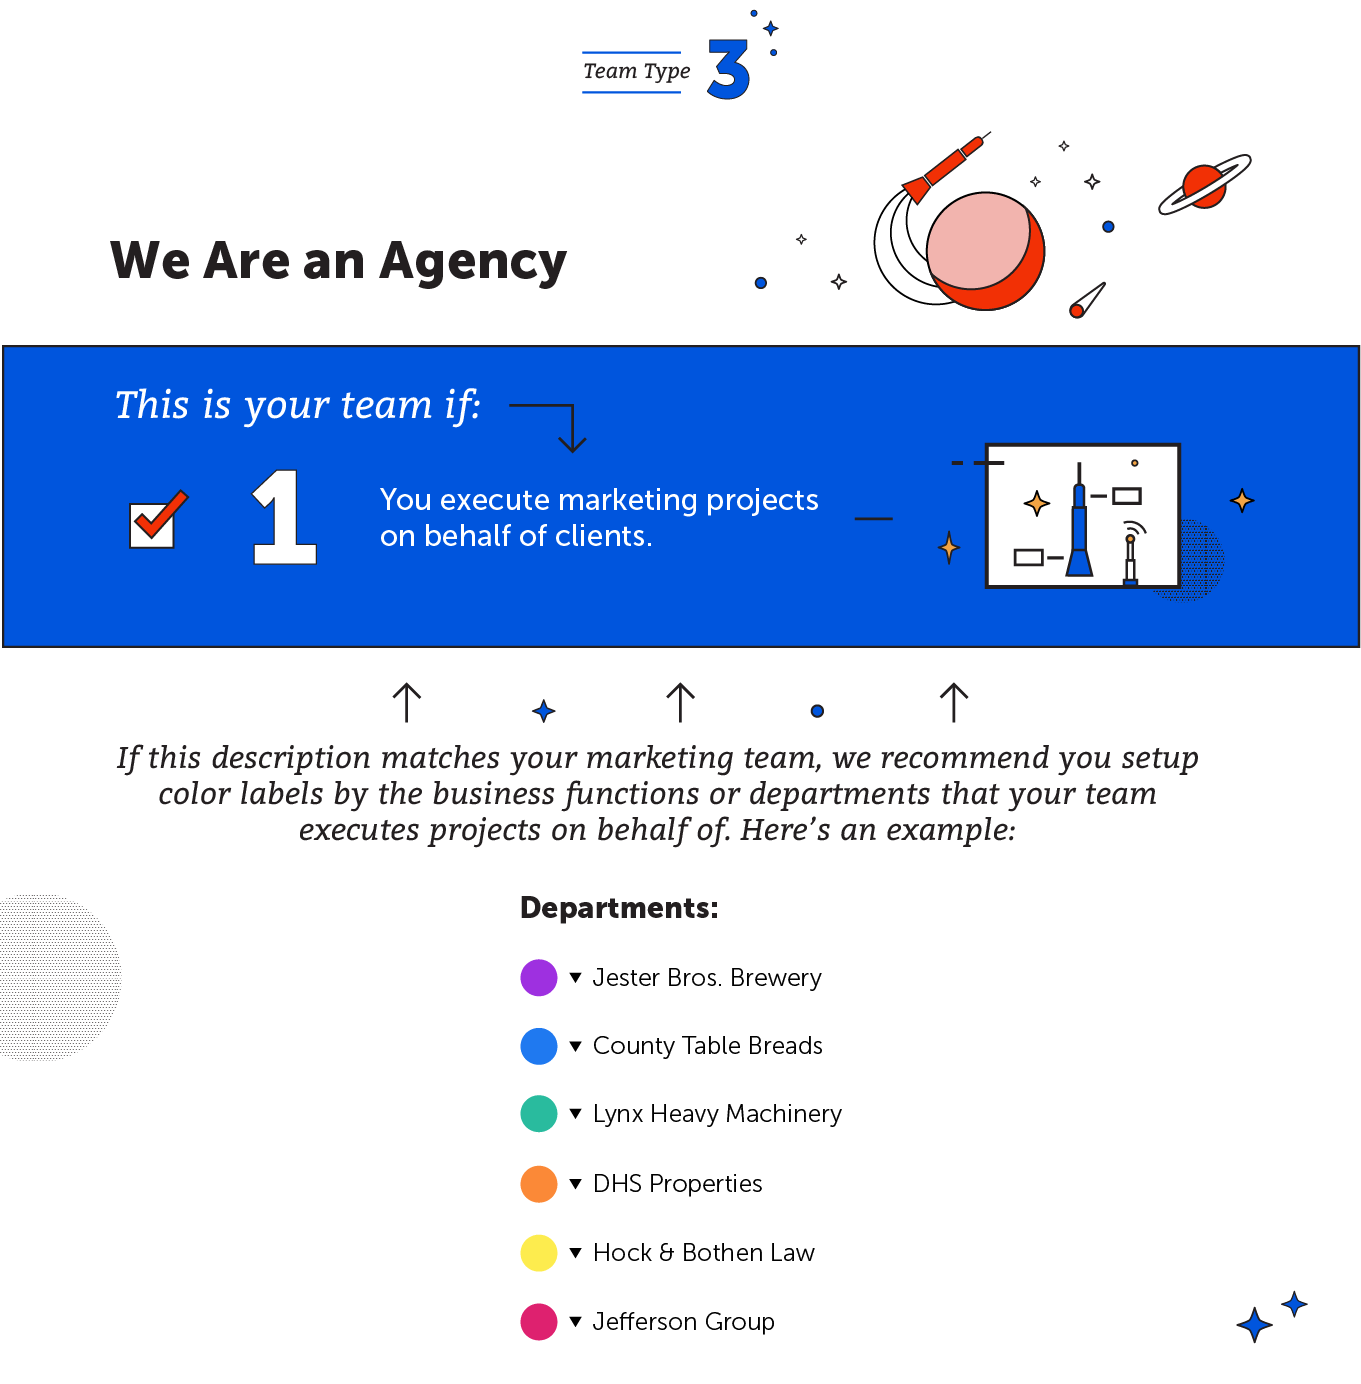 We are an agency